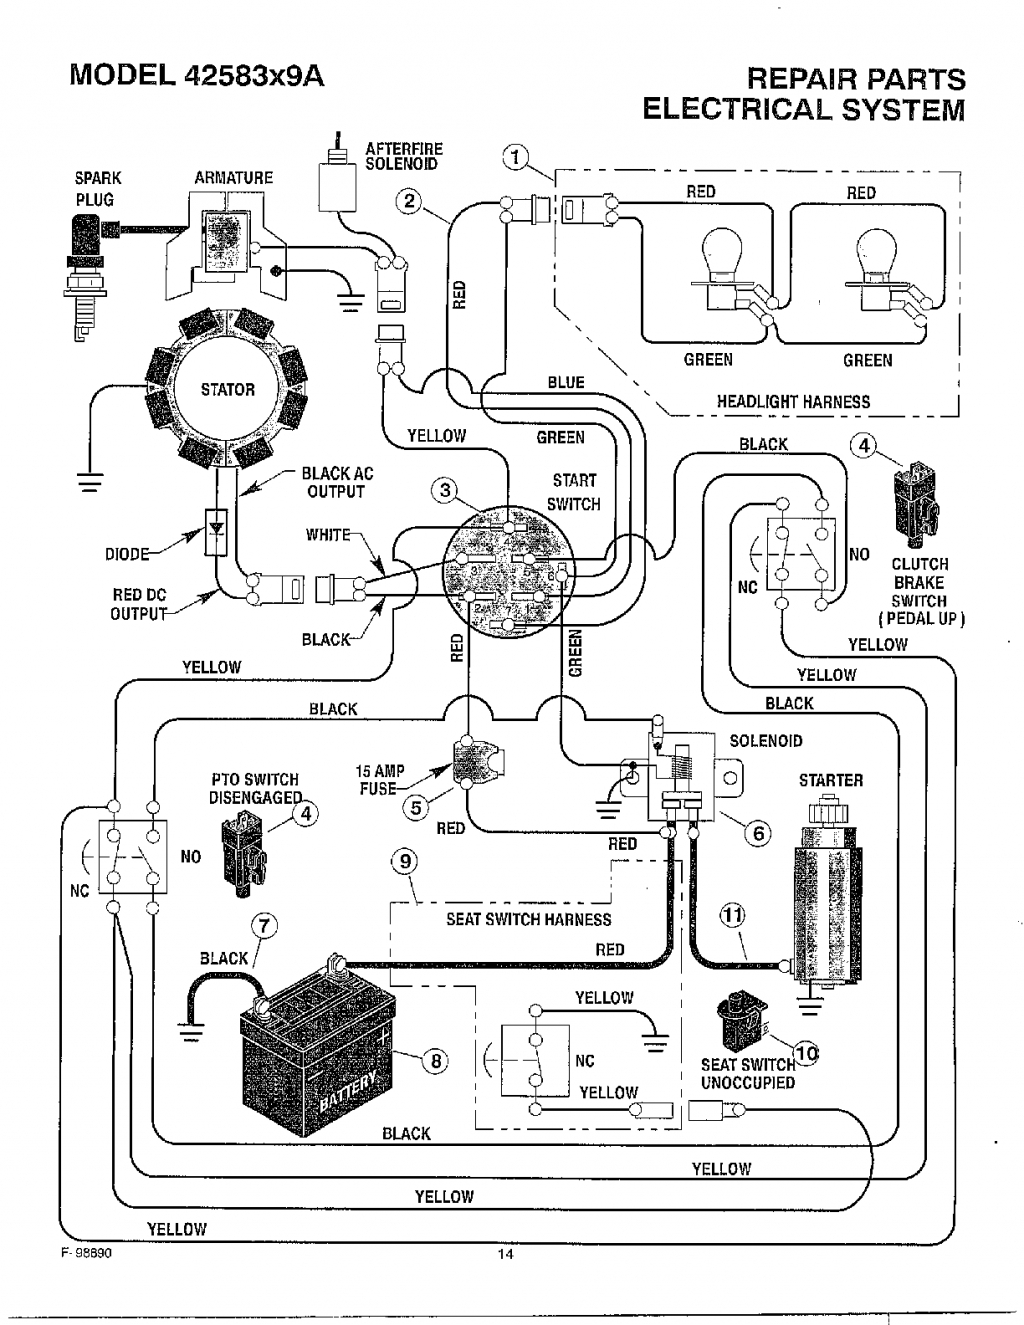 Murray Lawn Mower Ignition Switch Wiring Diagram from i0.wp.com